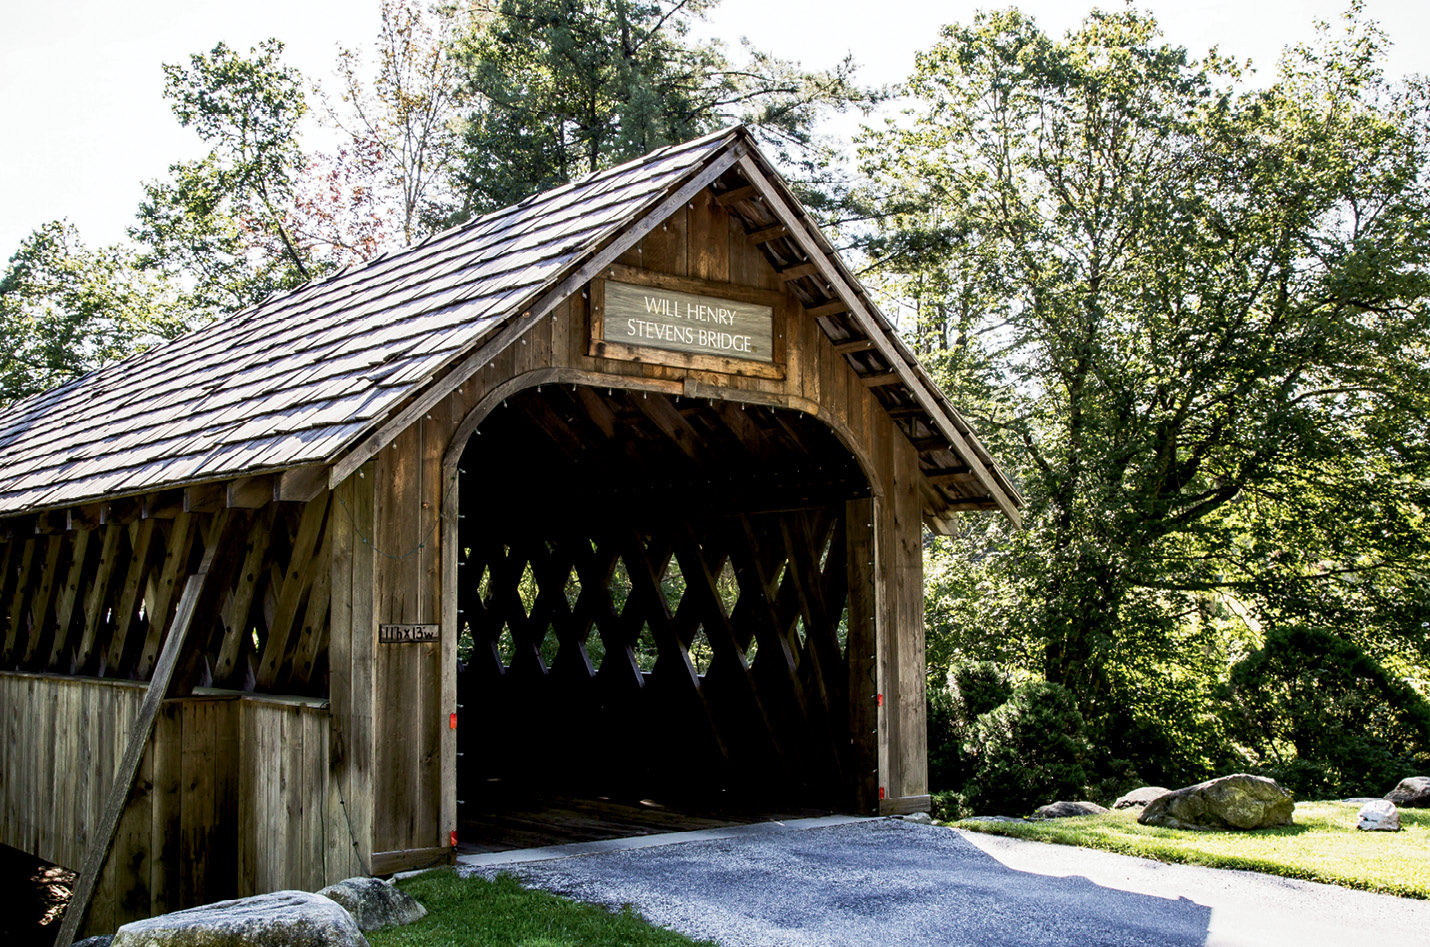 The covered bridge entrance to The Bascom arts center is a reclaimed wooden structure named for artist Will Henry Stevens.